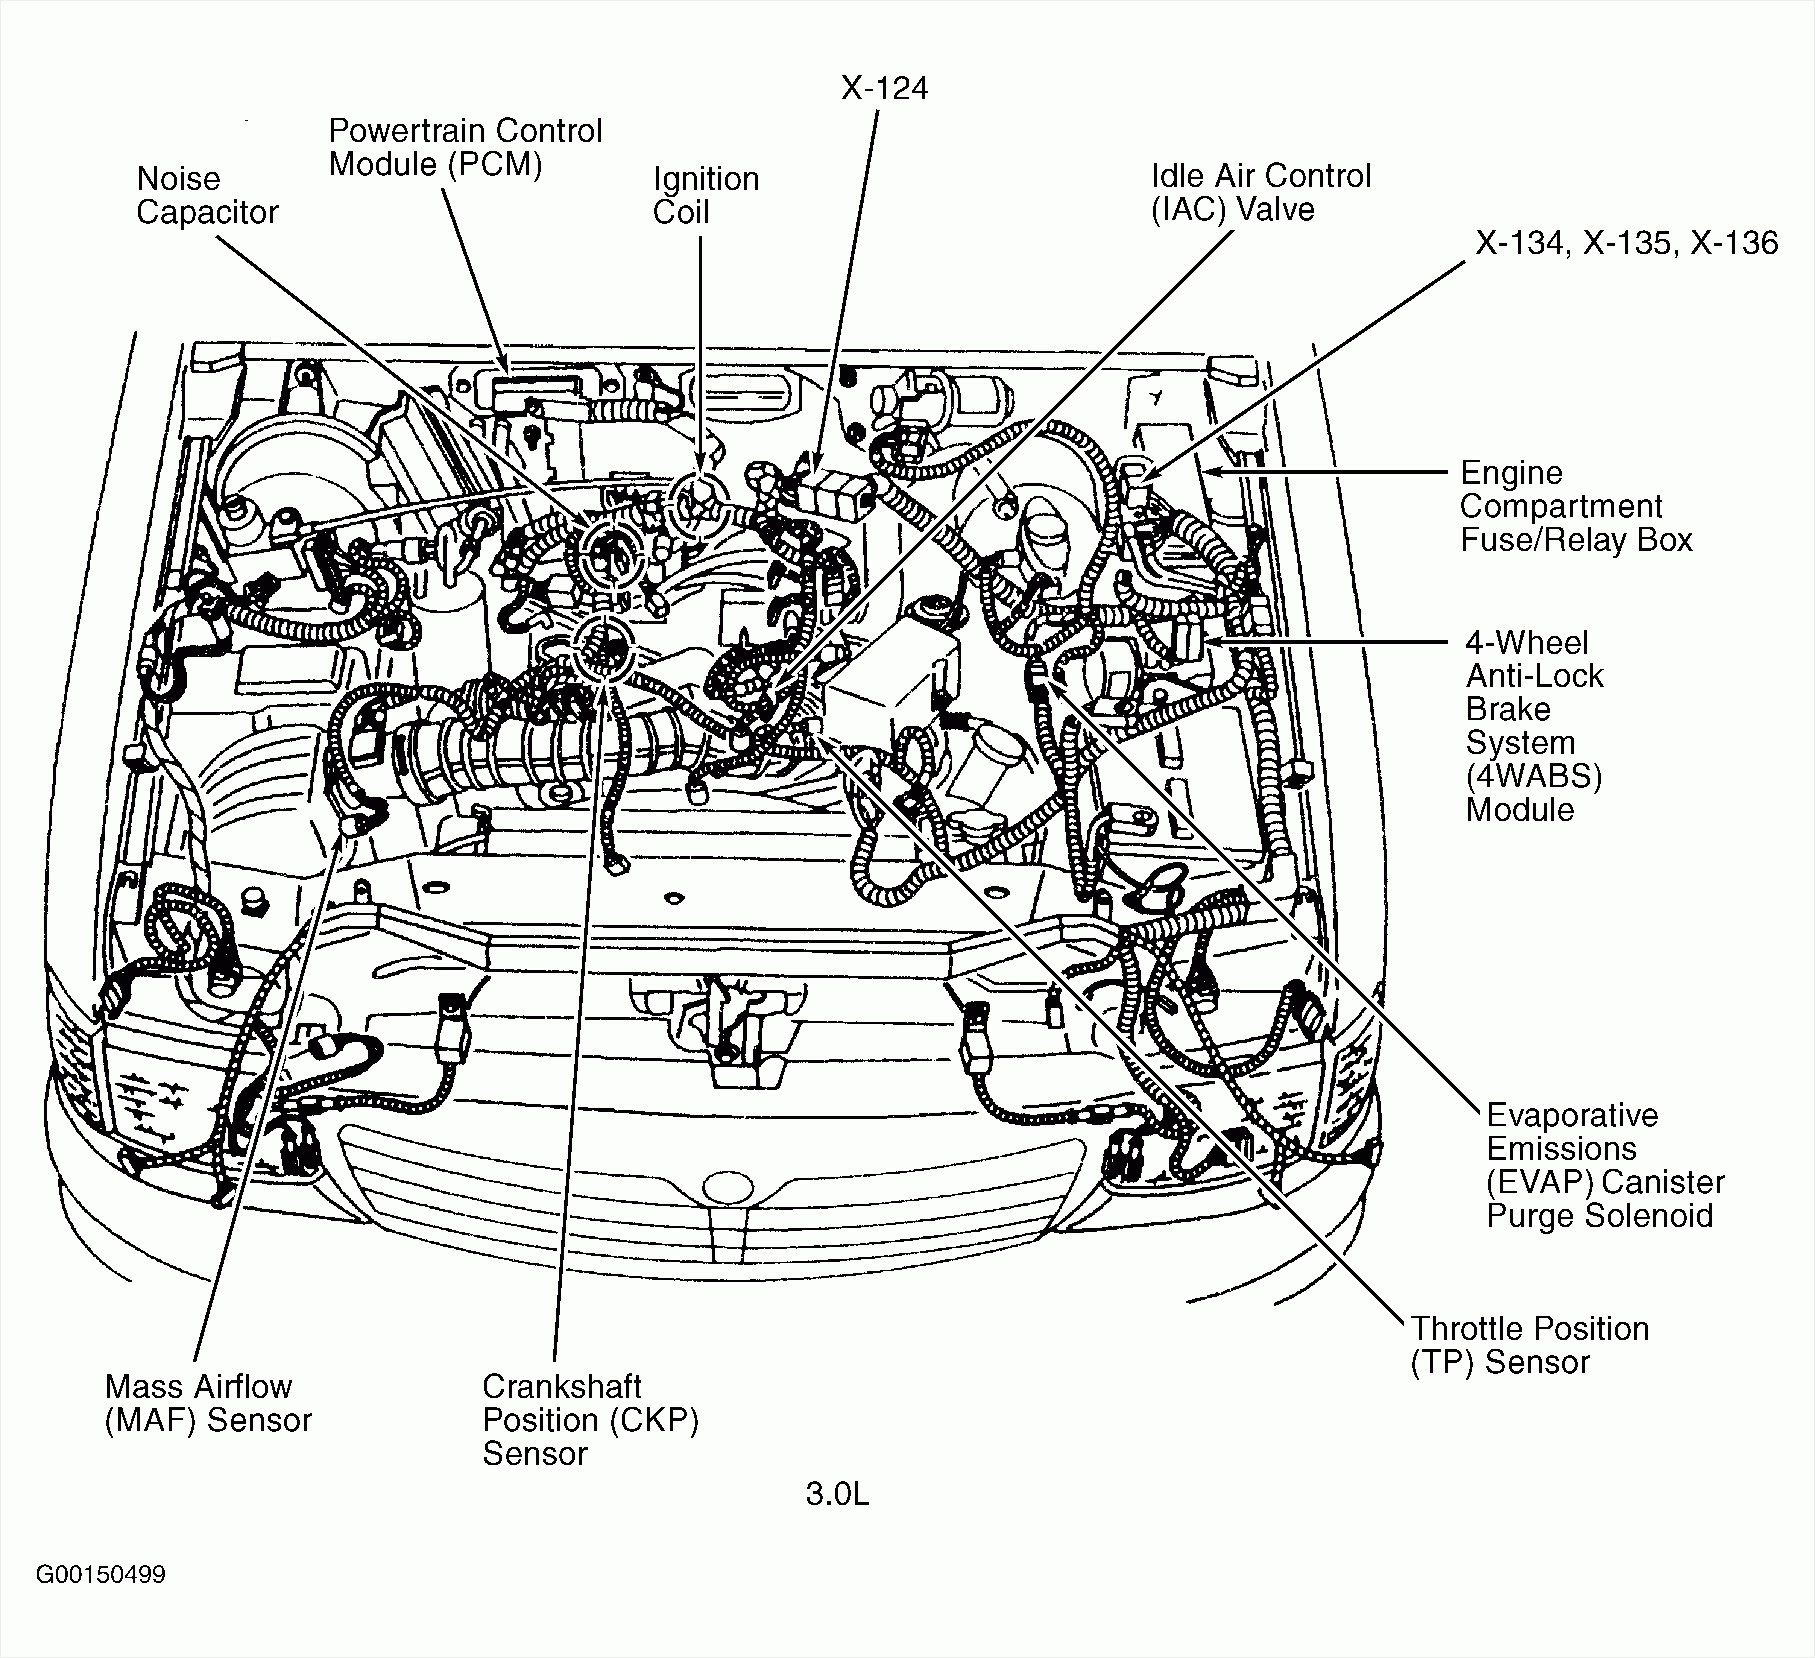 1997 Ford Powerstroke Fuel System Diagram Wiring Site Resource